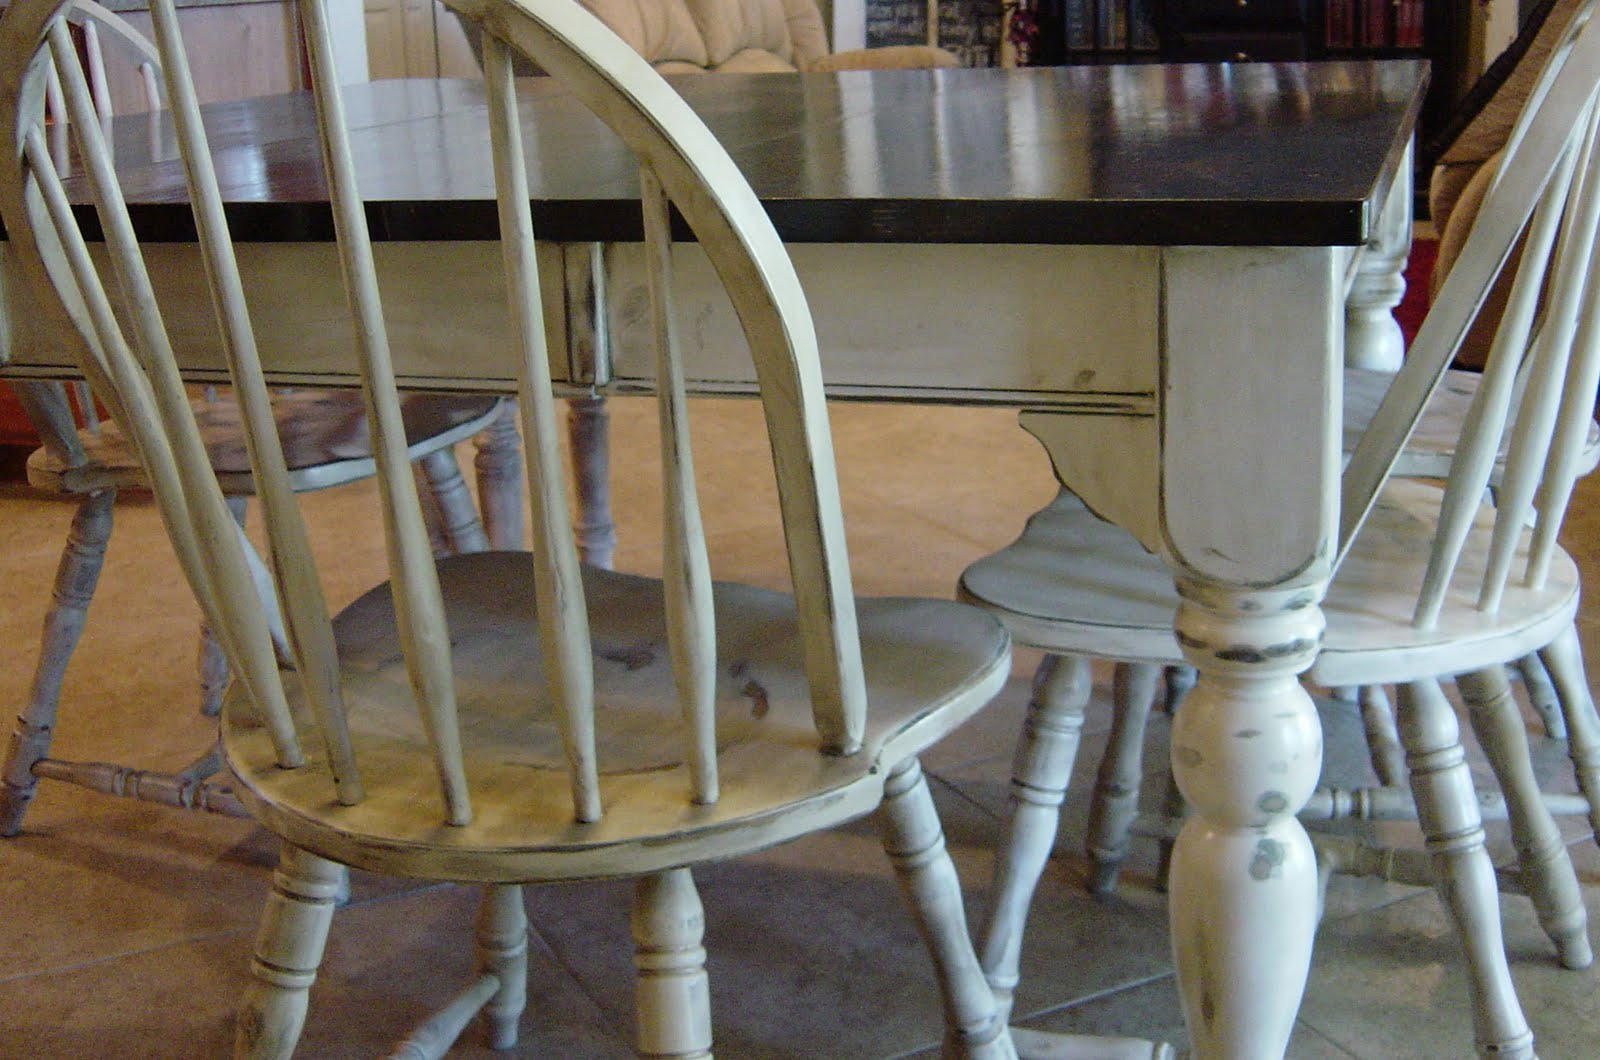 diy painted windsor chairs ikea desk remodelaholic kitchen table refinished with distressed look